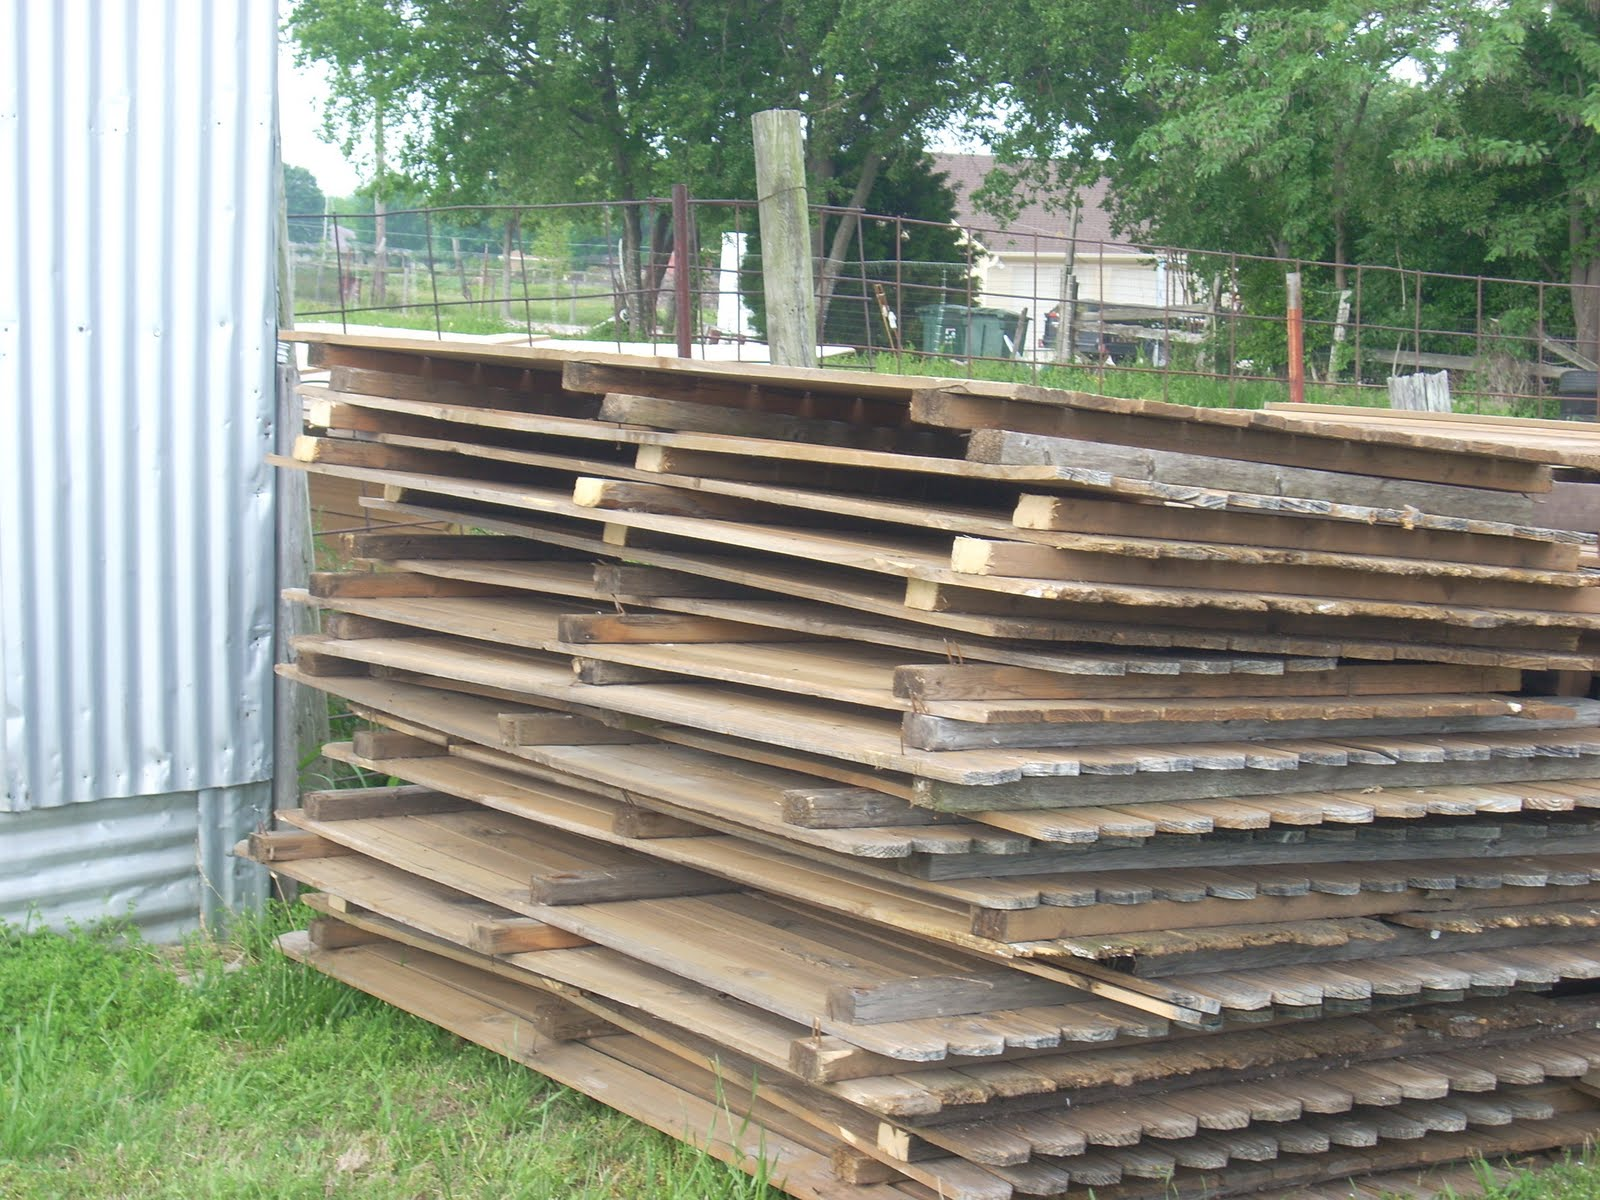 Superb img of  Wylie Texas: GONE Pine Fence Panels 145ft of 6' tall x 8' wide with #628249 color and 1600x1200 pixels